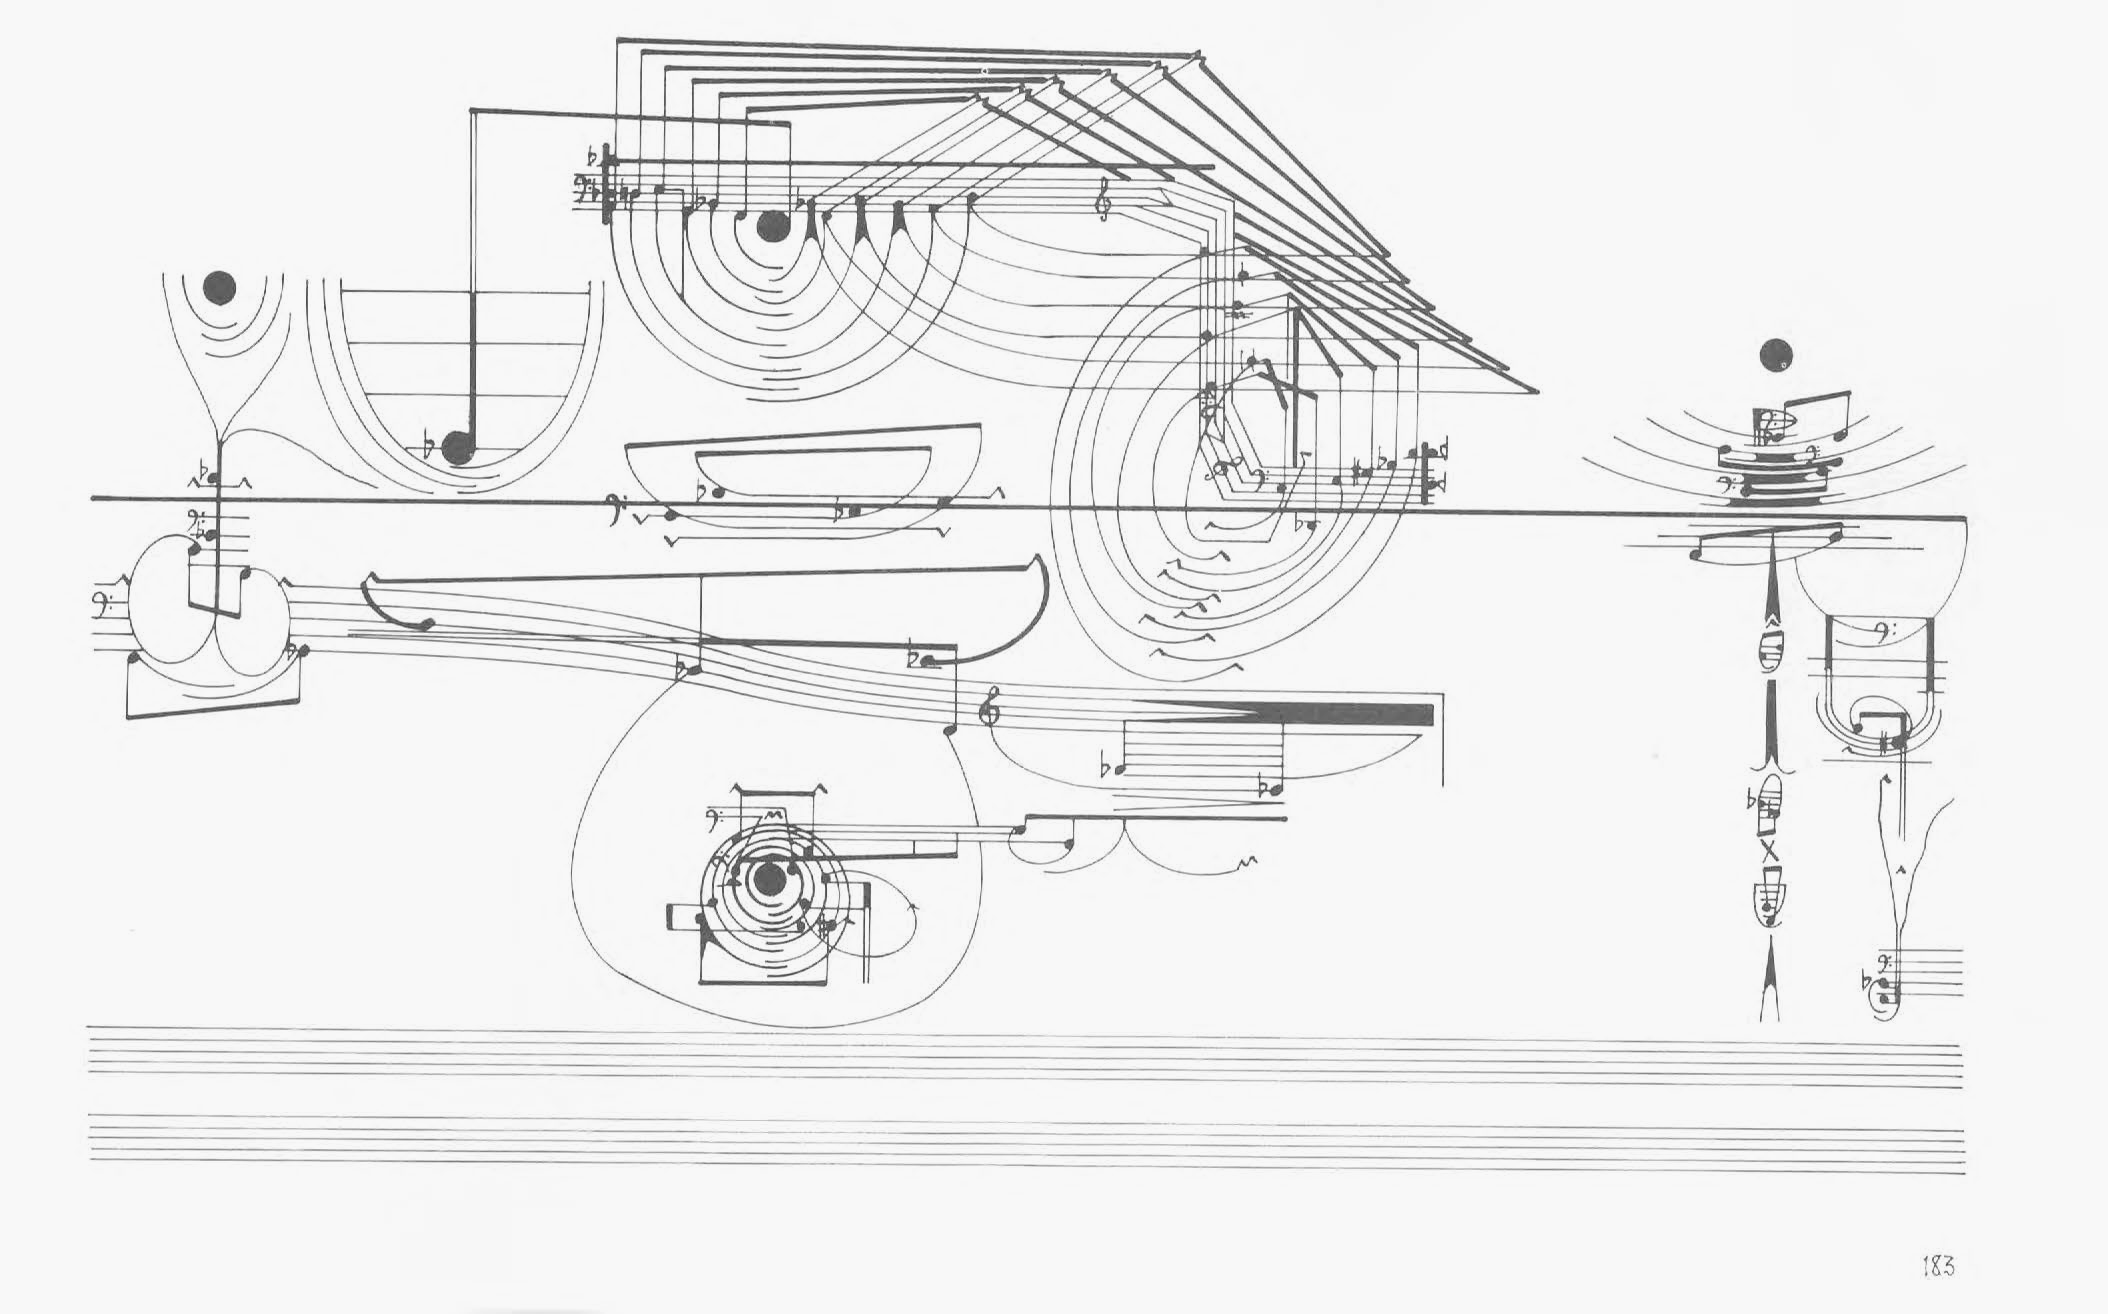 'Treatise': A Visual Symphony Of Information Design - Why Cornelius Cardew's legendary 193-page graphic score might not actually be about music